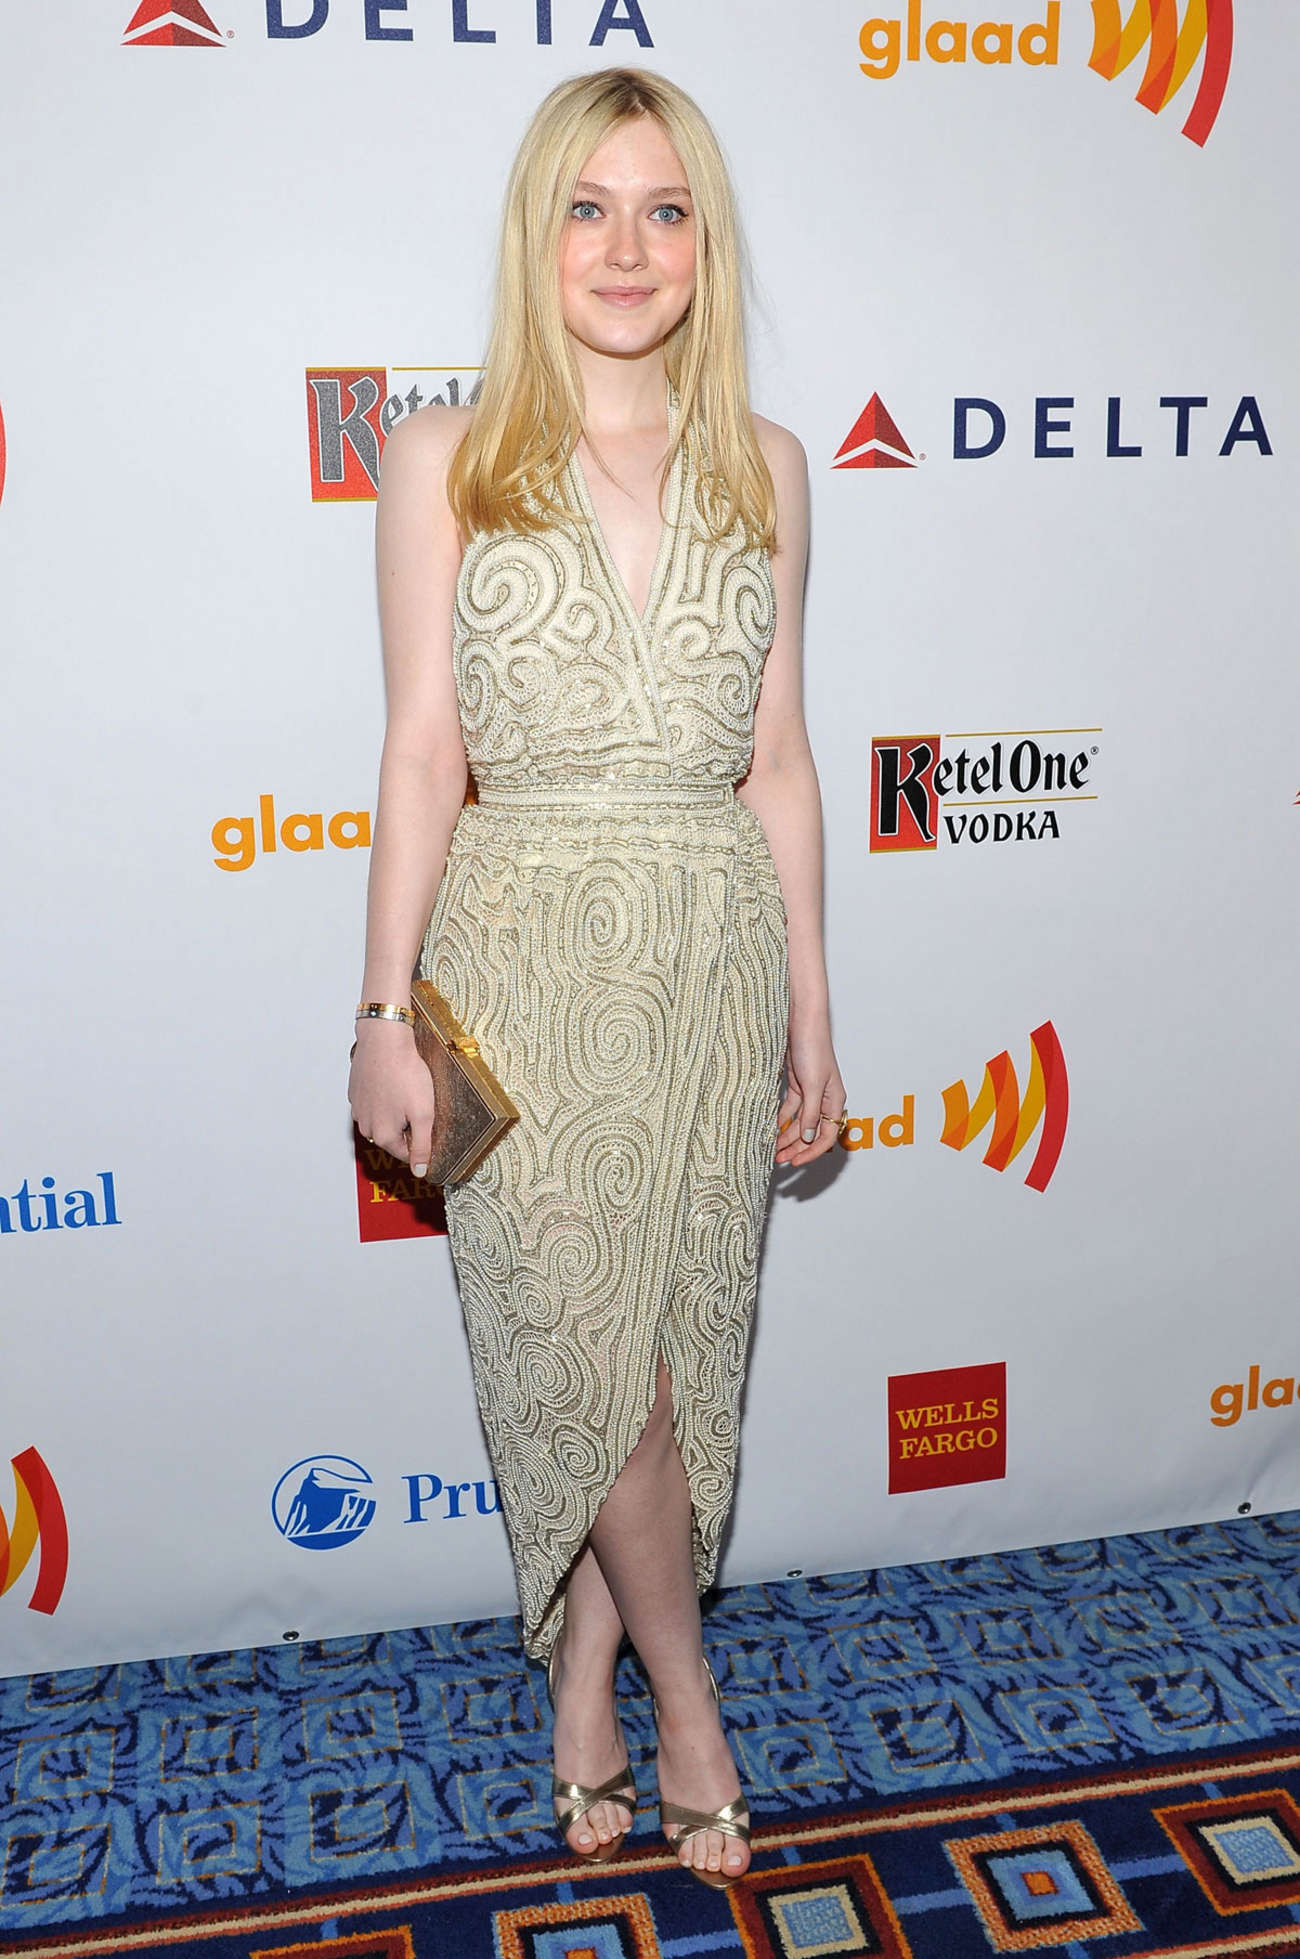 Dakota Fanning awards